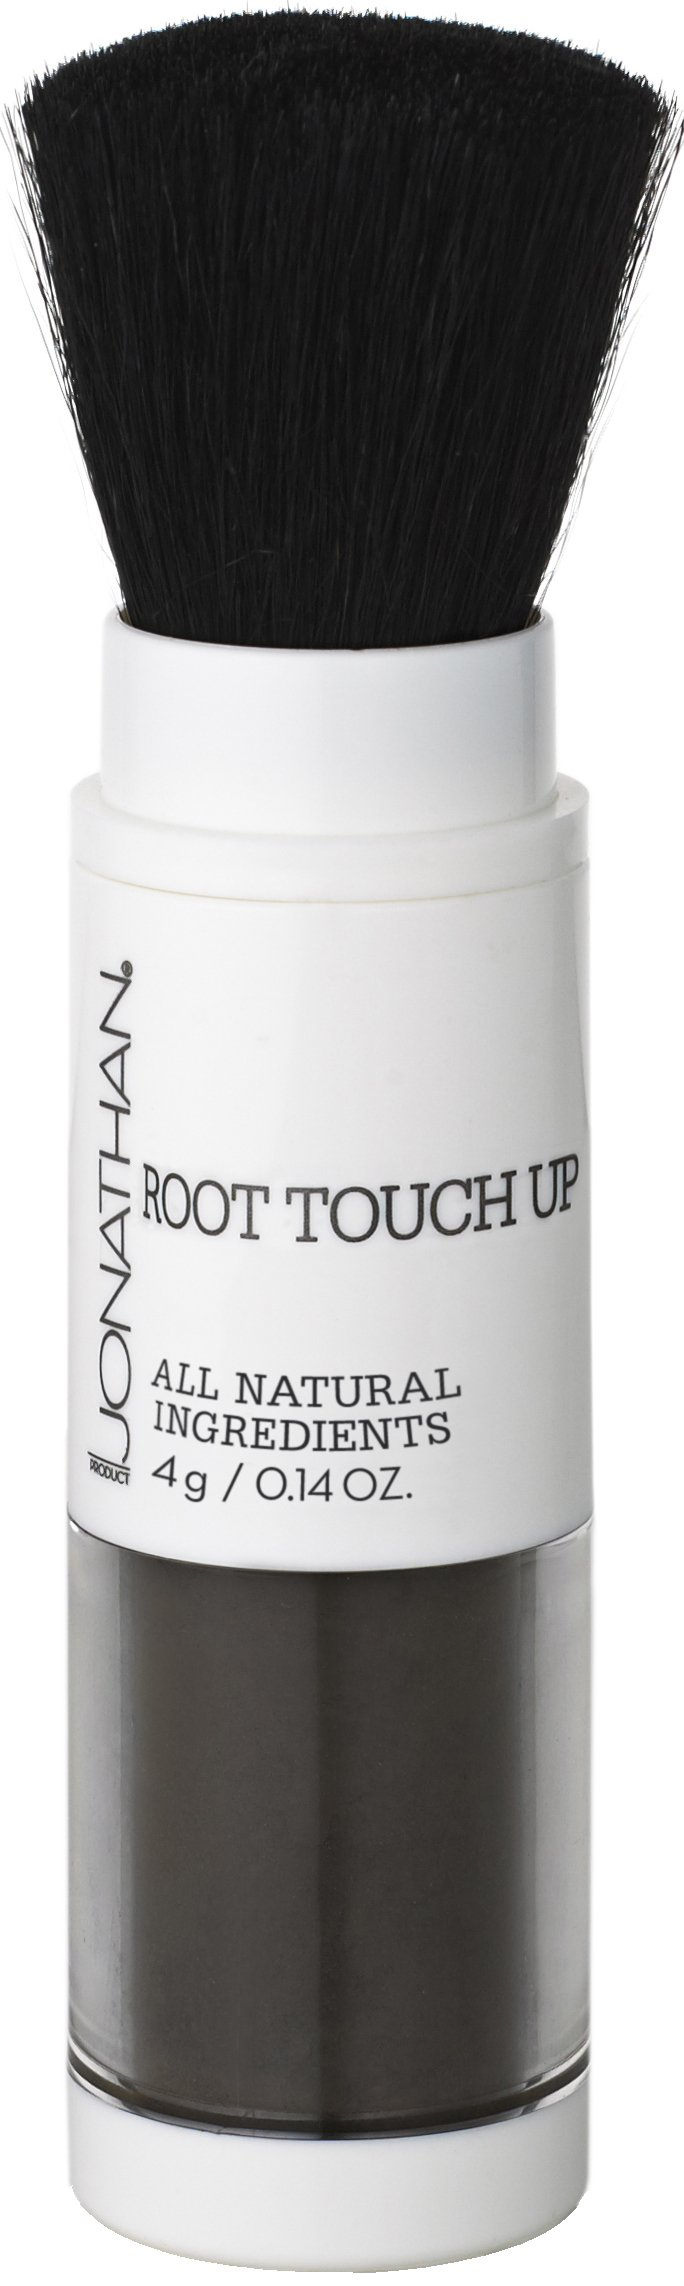 Jonathan Product Root Touch-Up-Black 4g/ 0.14 oz by JONATHAN Product